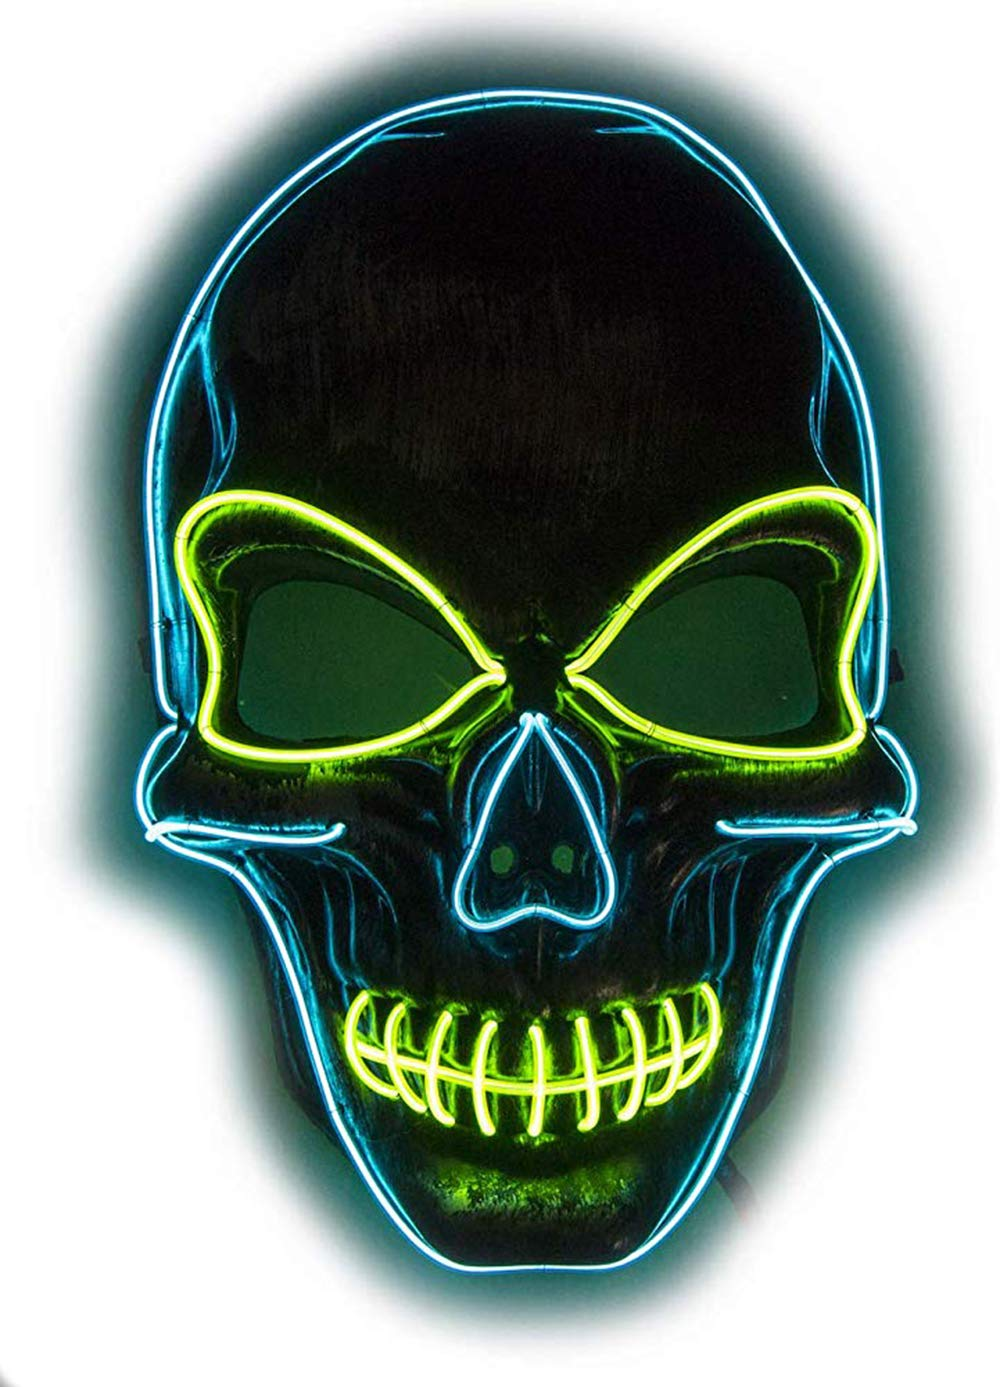 Great LED Skull Mask!